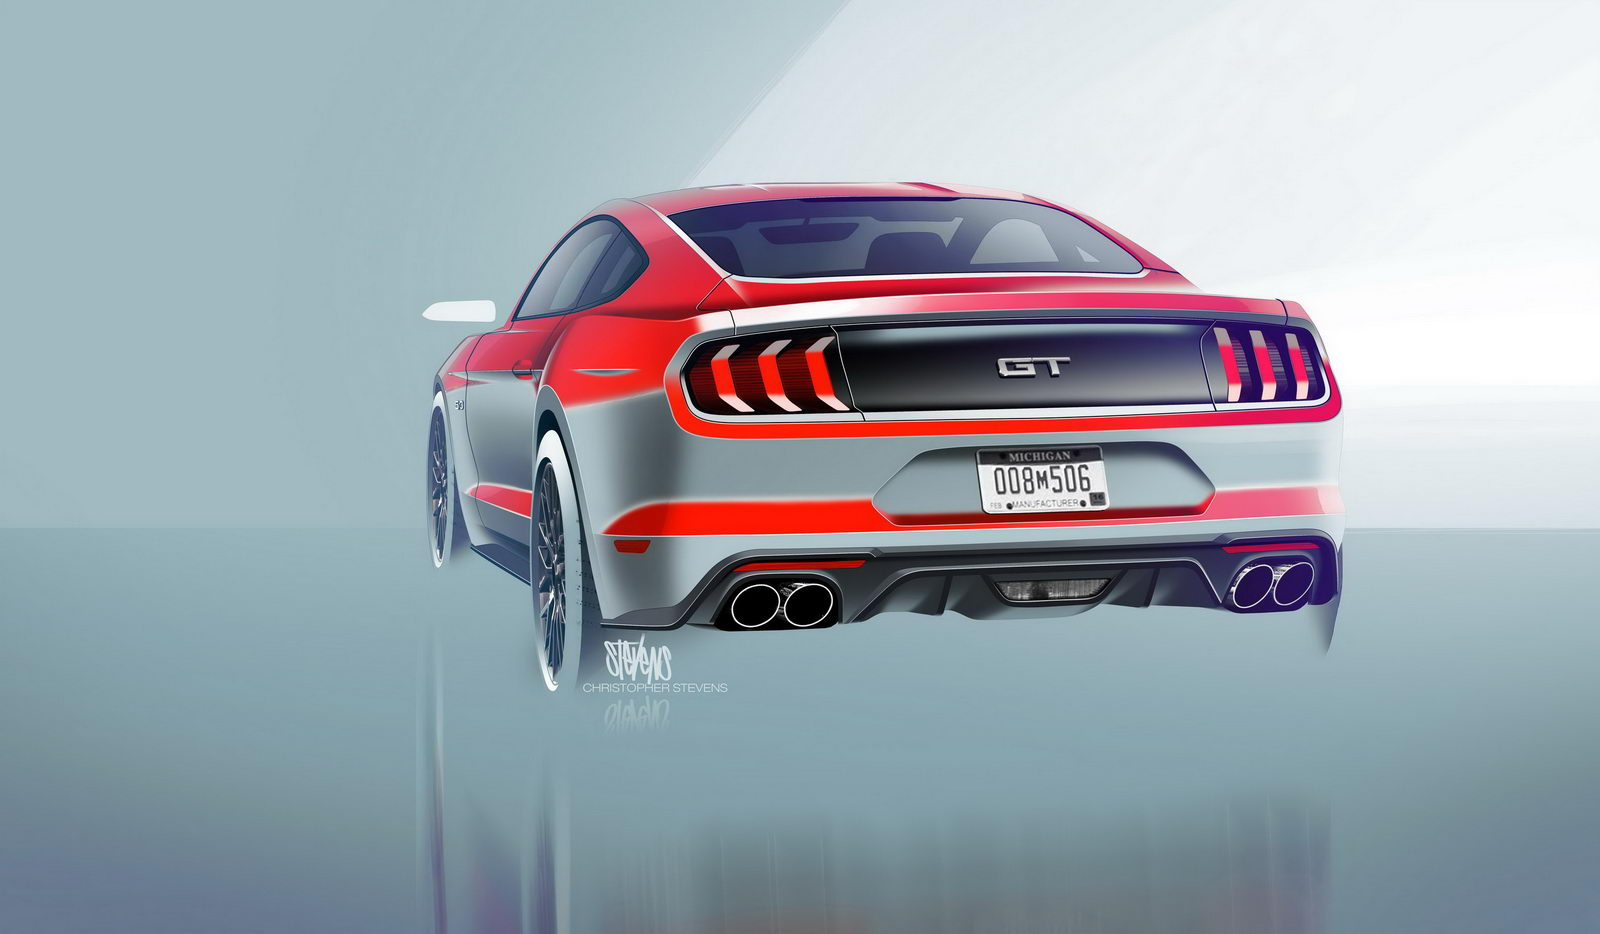 Ford Mustang GT facelift 2018 10